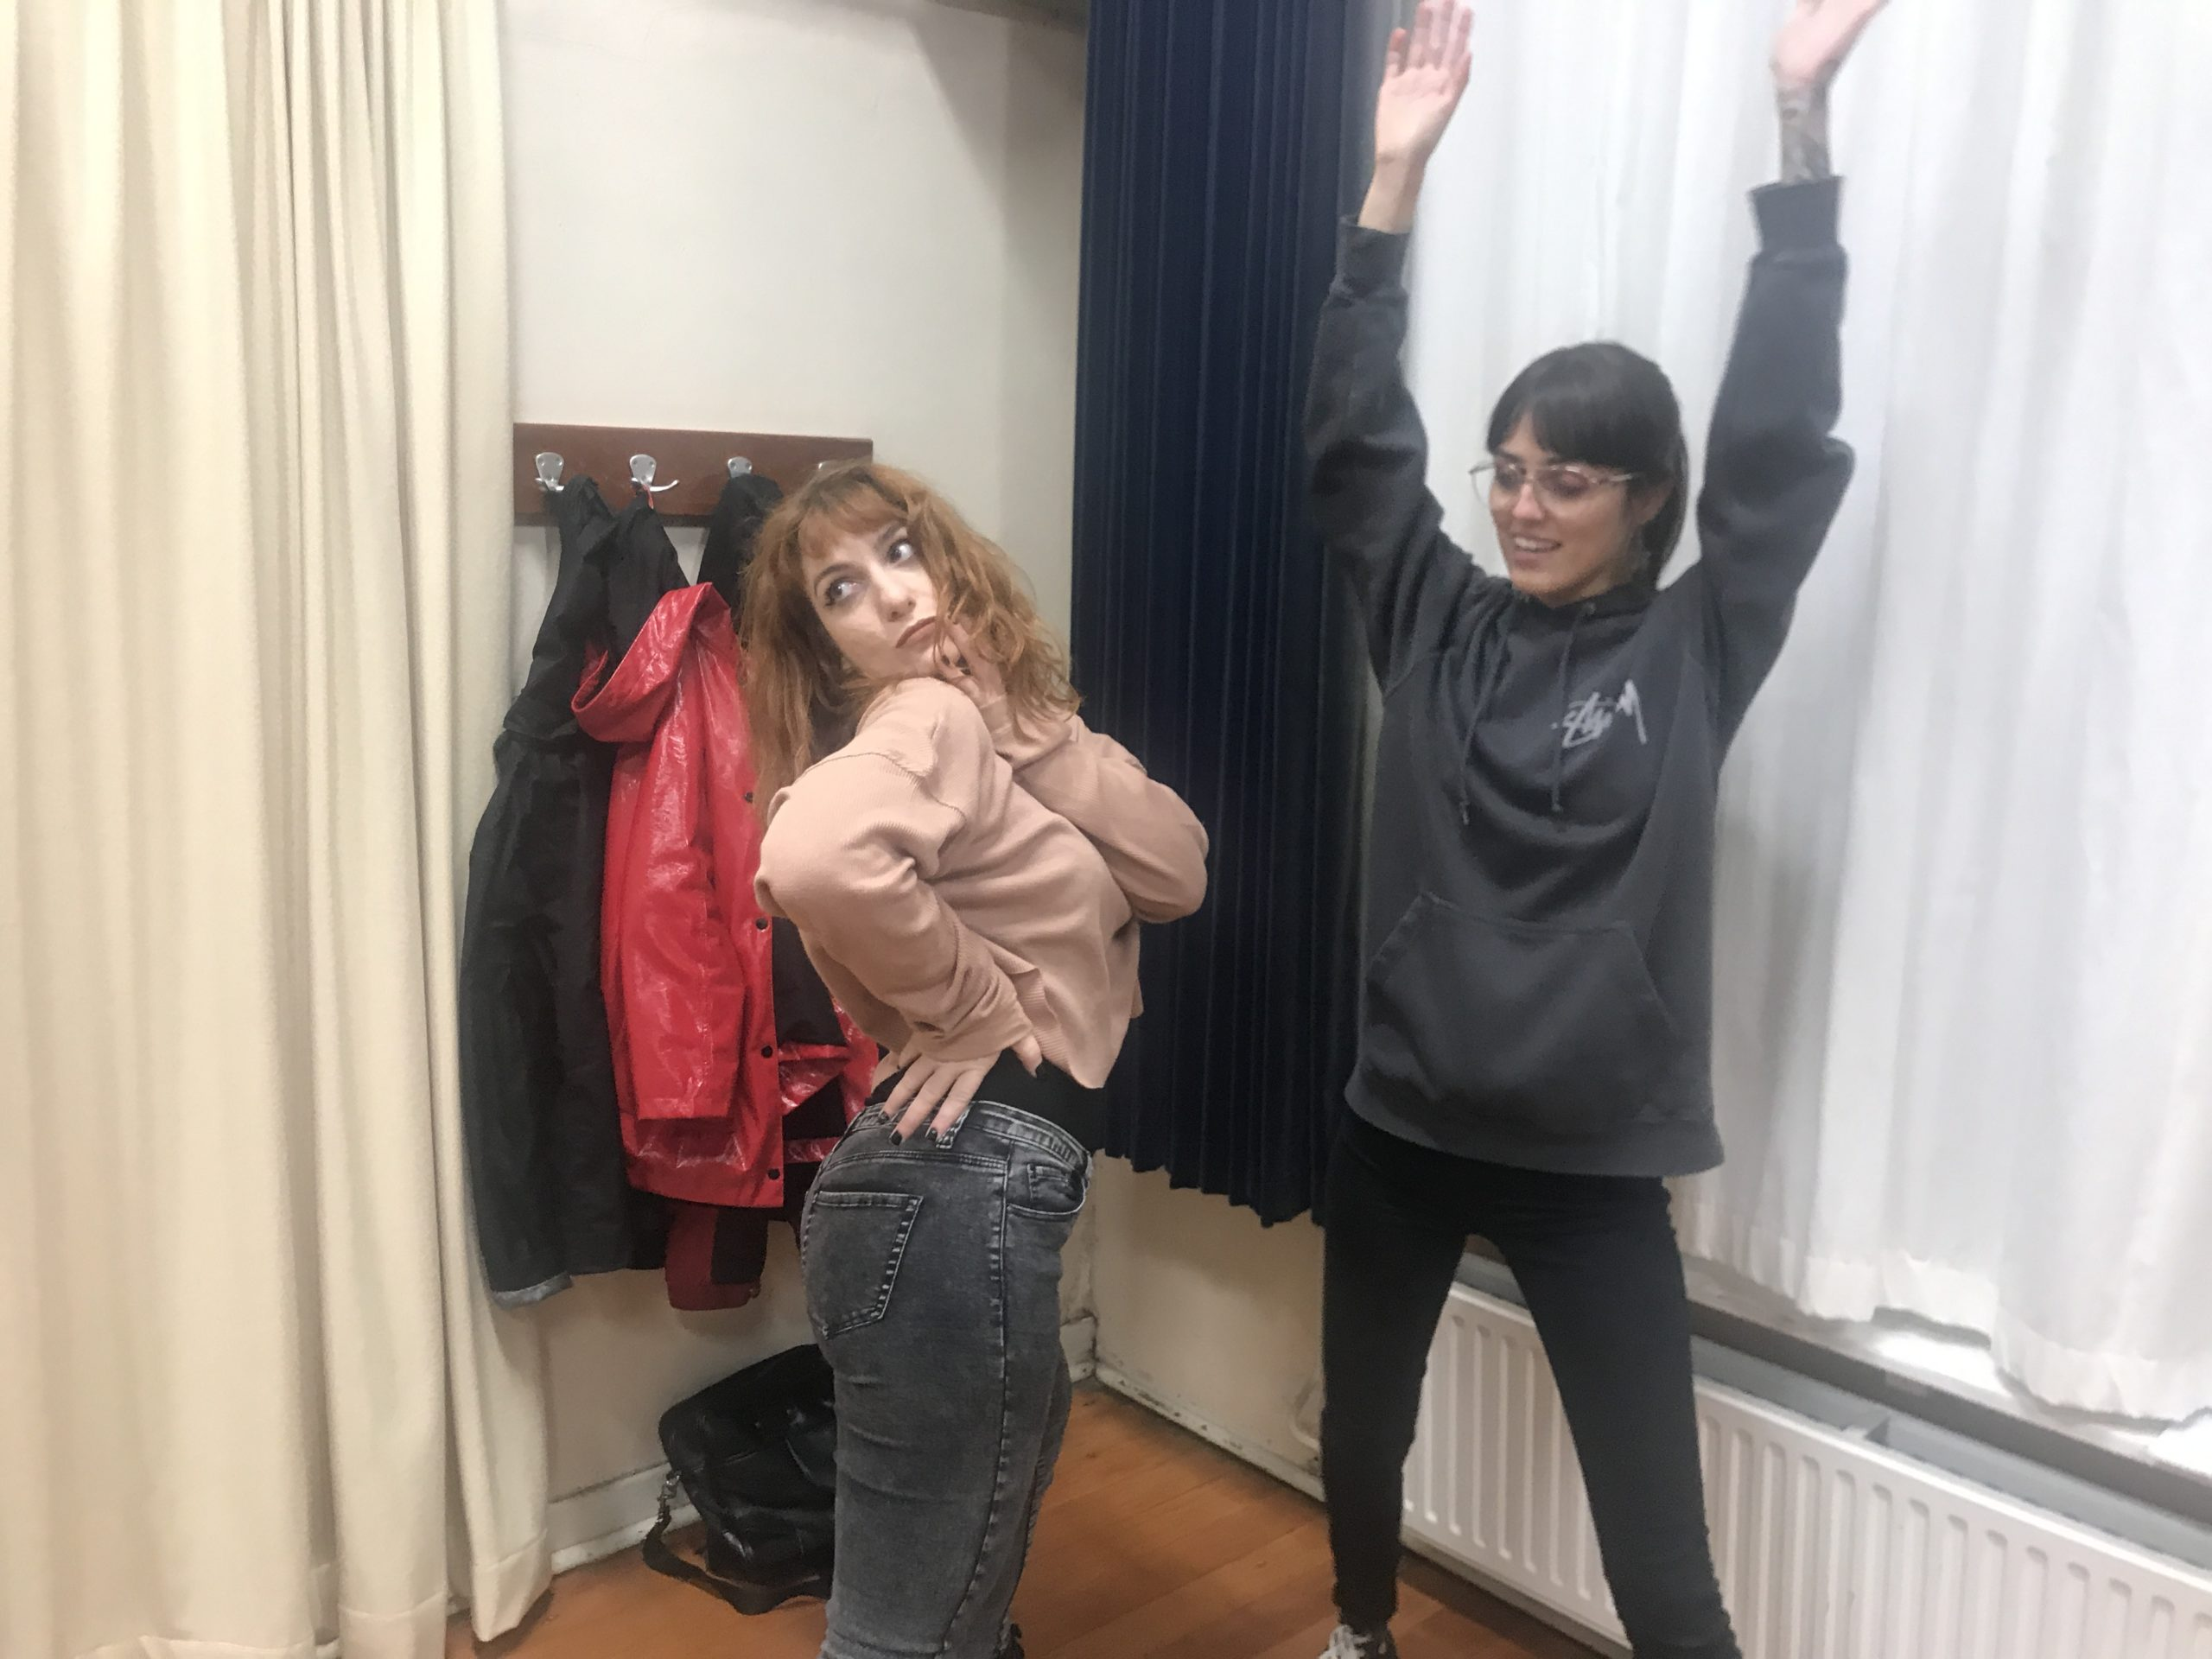 Act Attack's Improv Class. A woman pretends to look at the reflection of her back in the mirror. The other one has her arms in the air